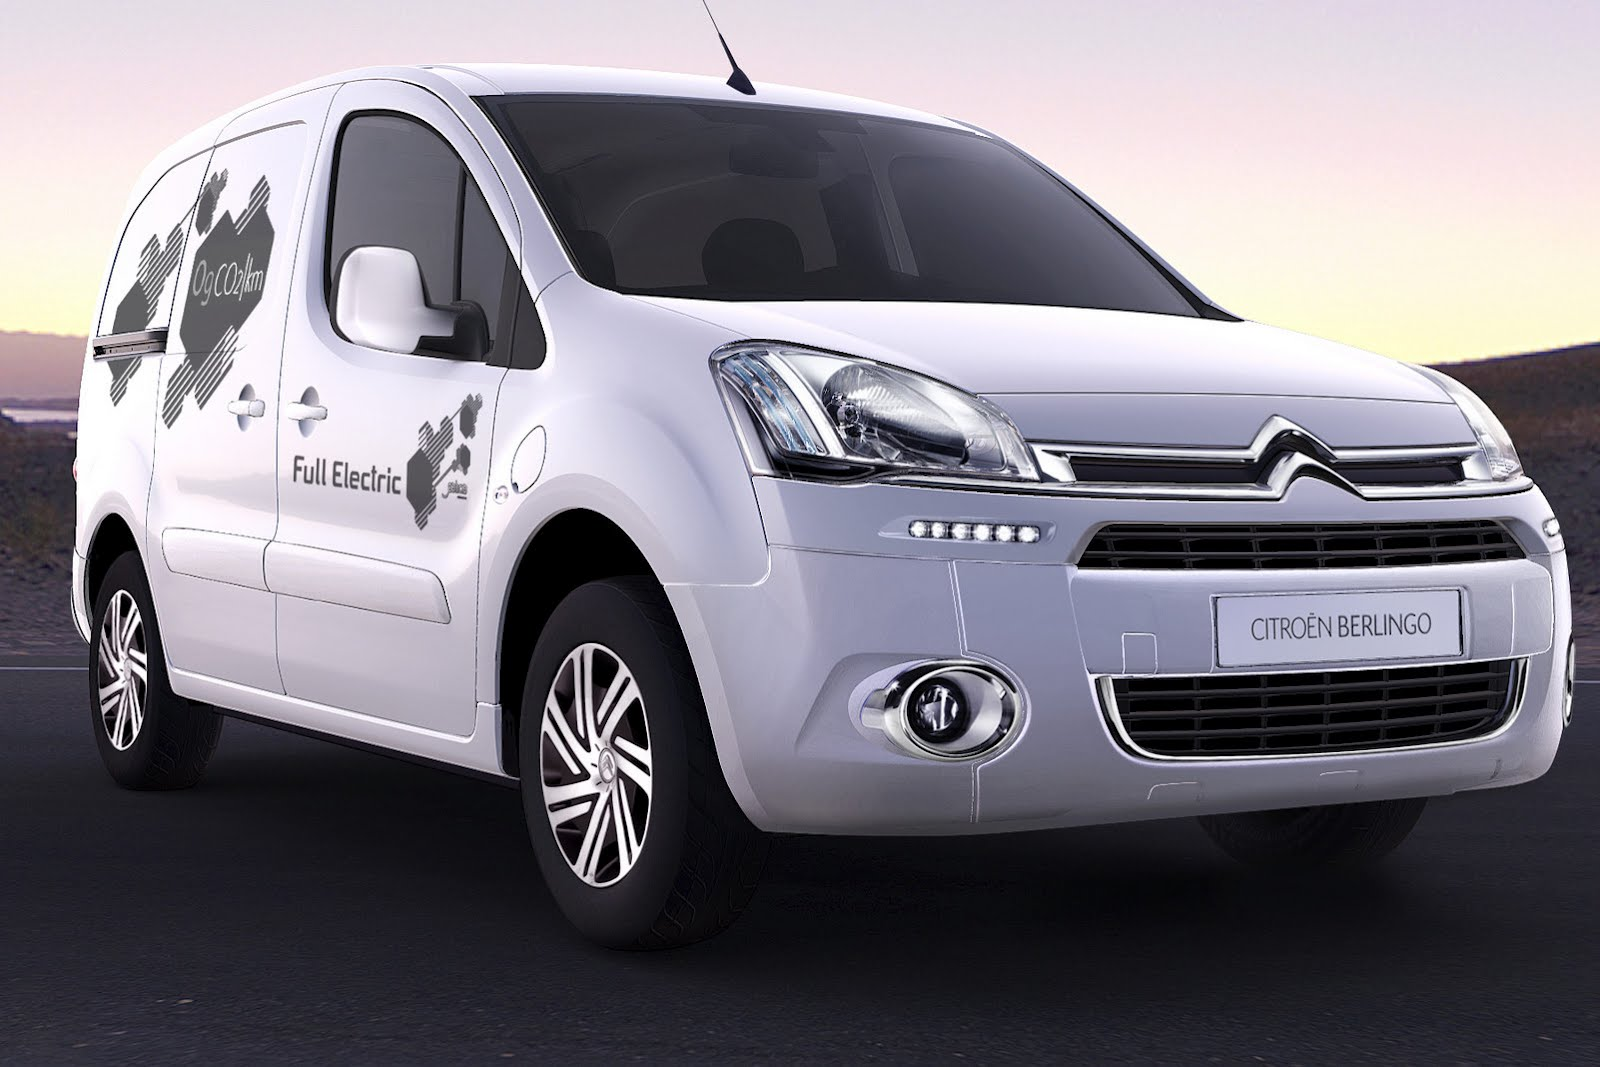 2012 Citroen Berlingo #8